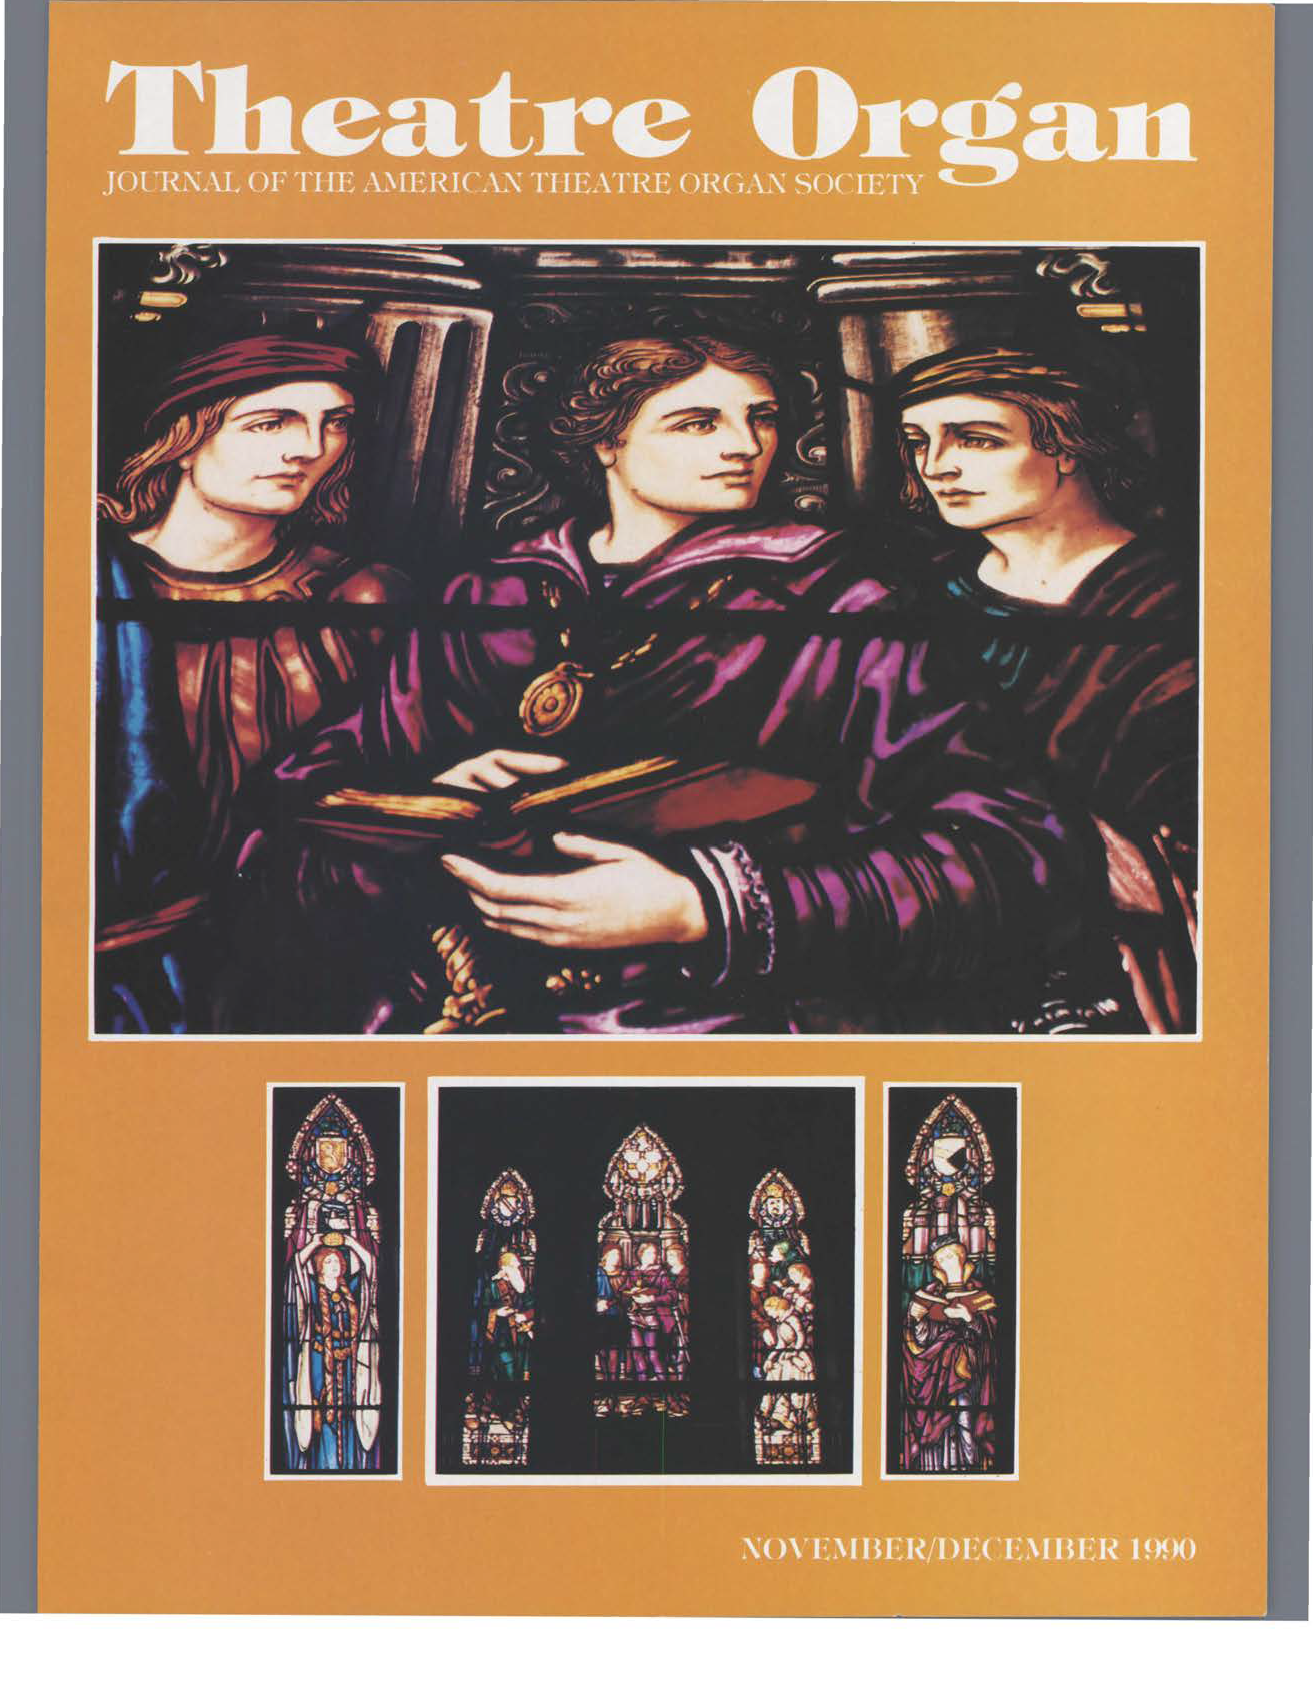 Theatre Organ, November - December 1990, Volume 32, Number 6